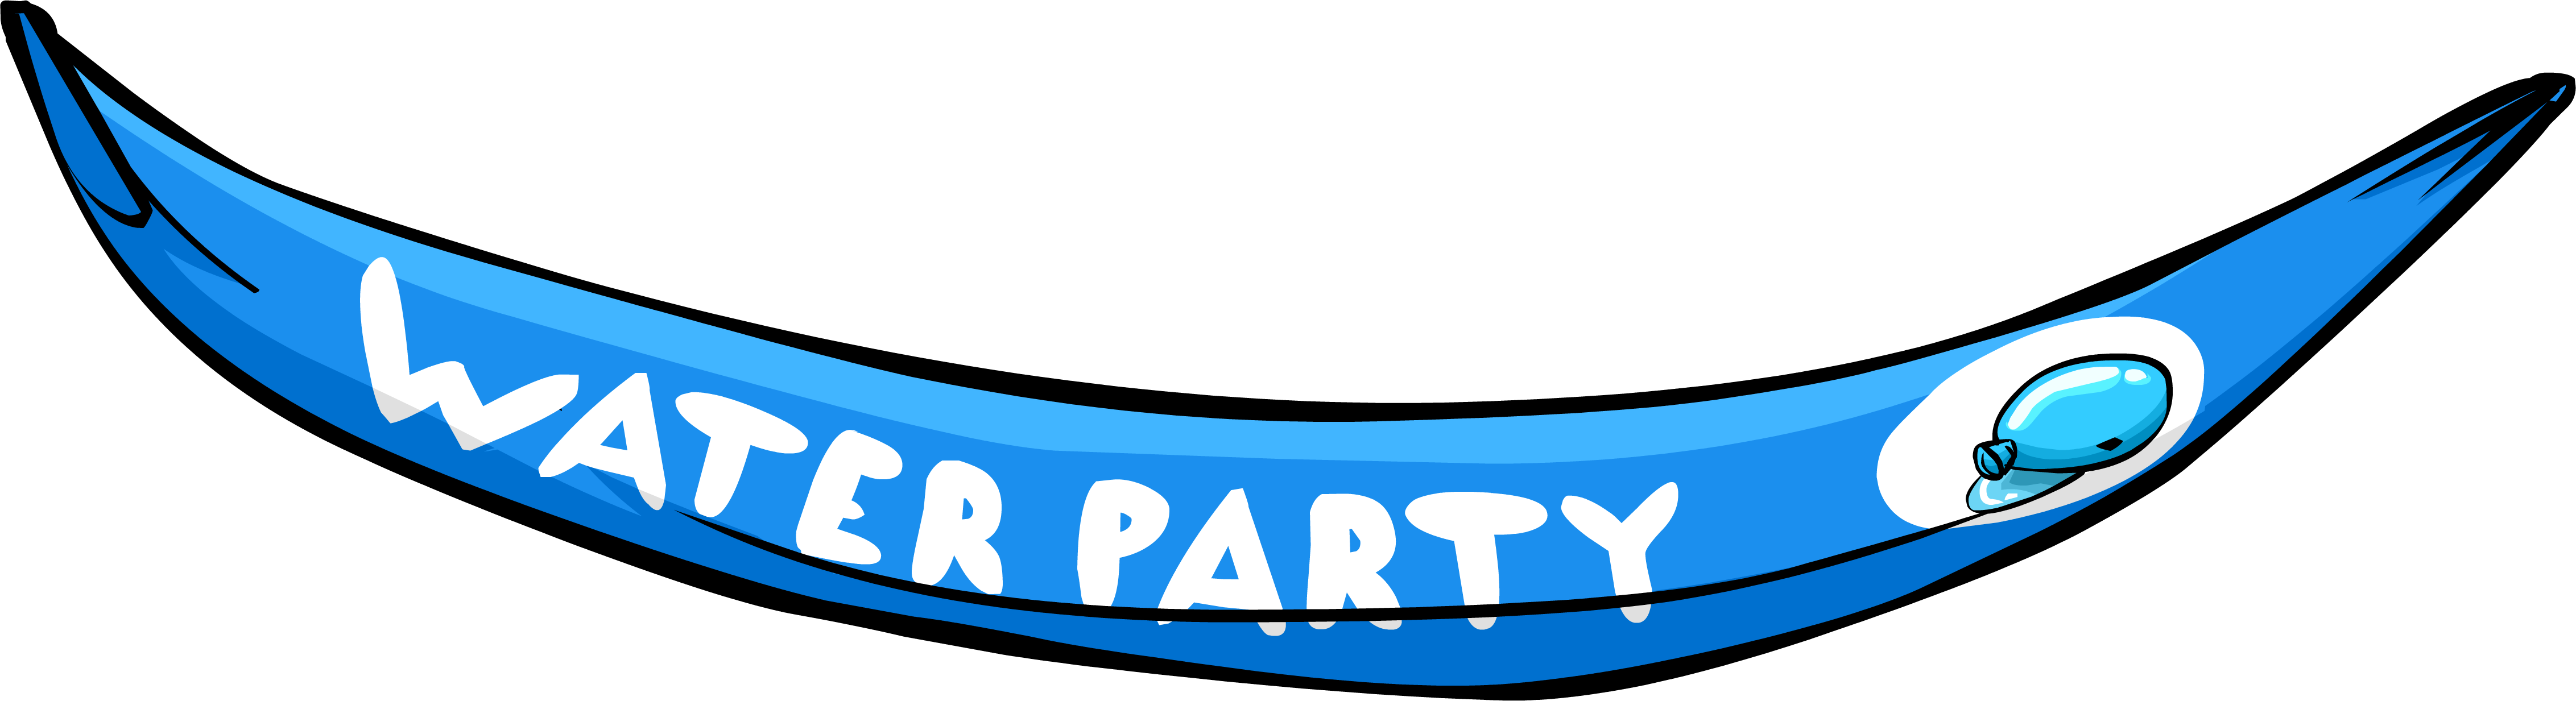 water clipart party